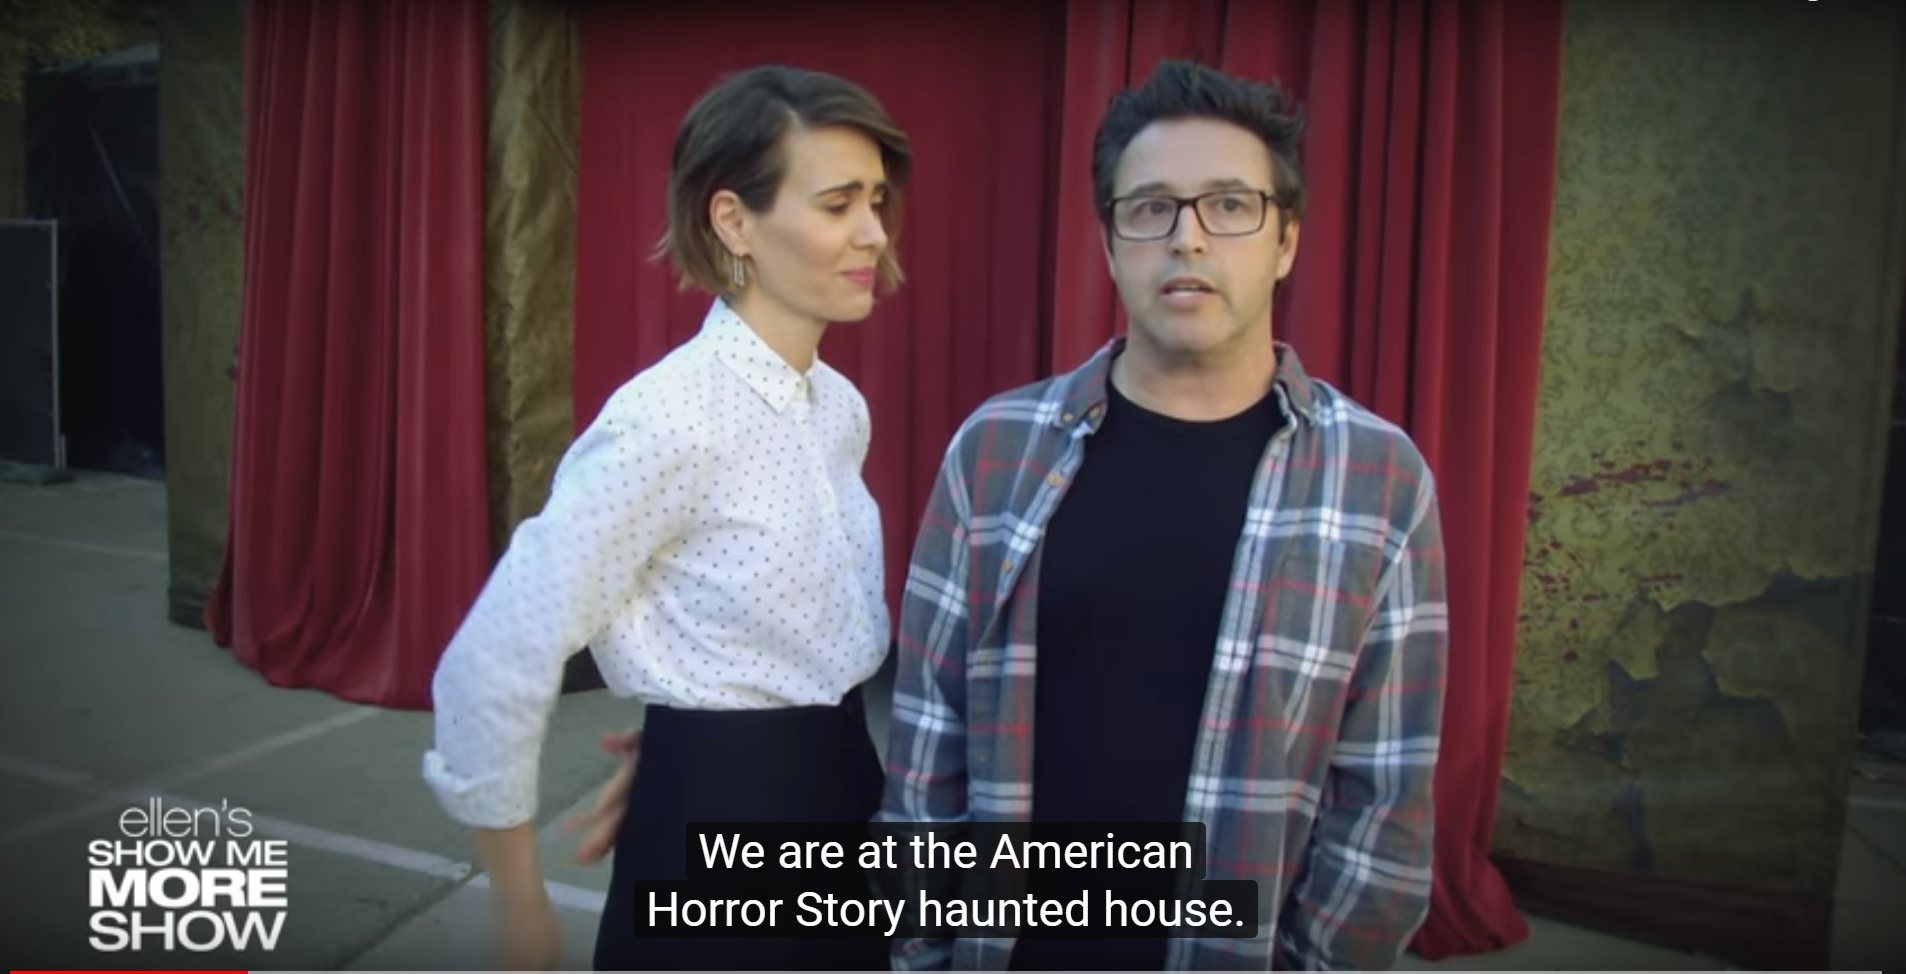 pictures Ellens Annual Halloween Haunted House Video Is Here—and Its the Best One Yet